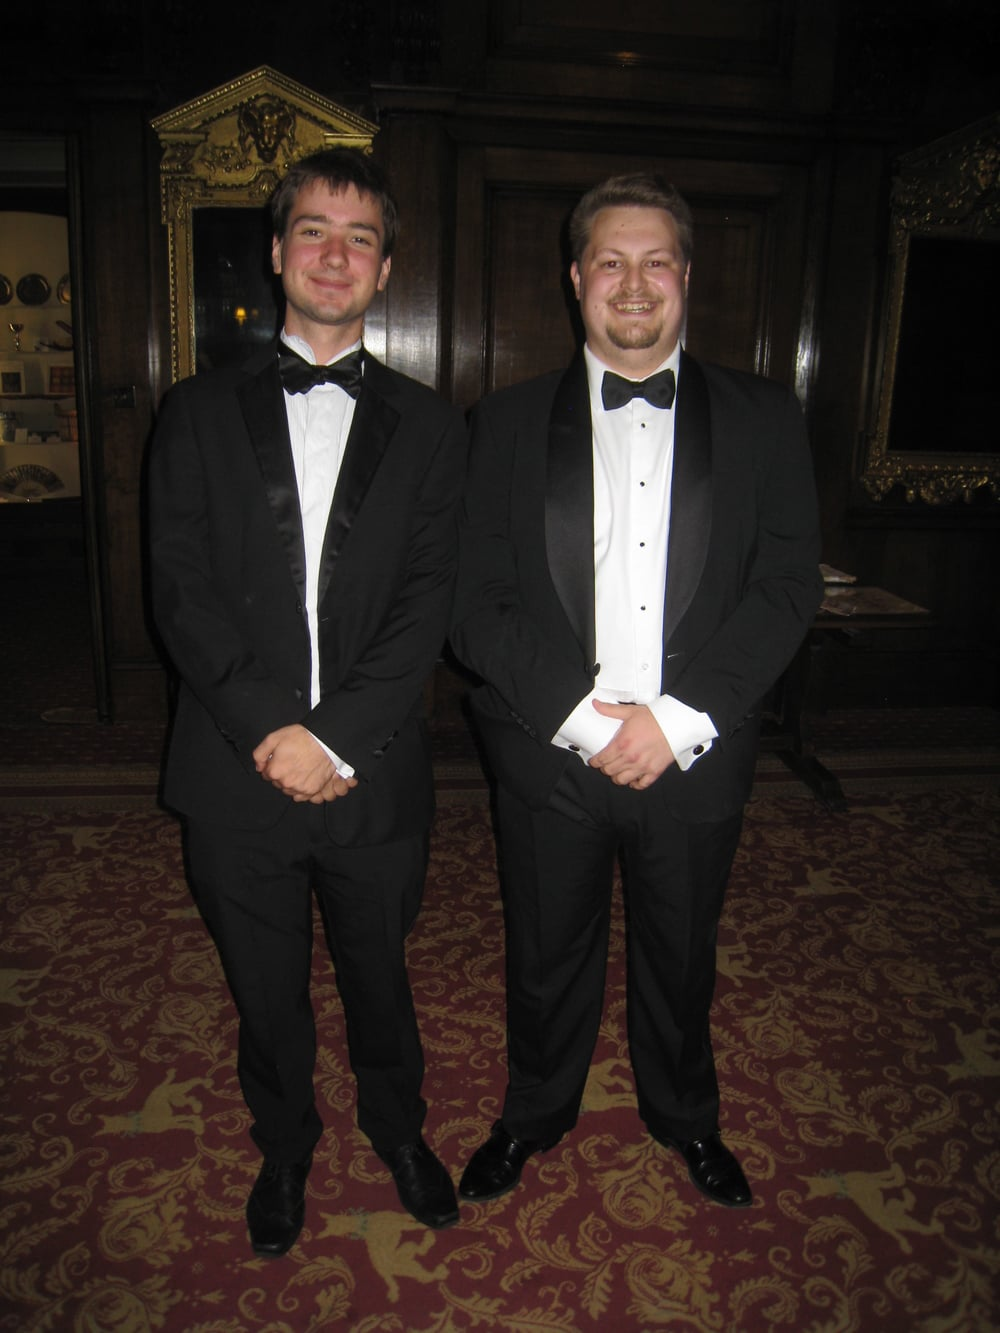 Pianist Edward Whitehead / GSM Bursary Student David Ireland